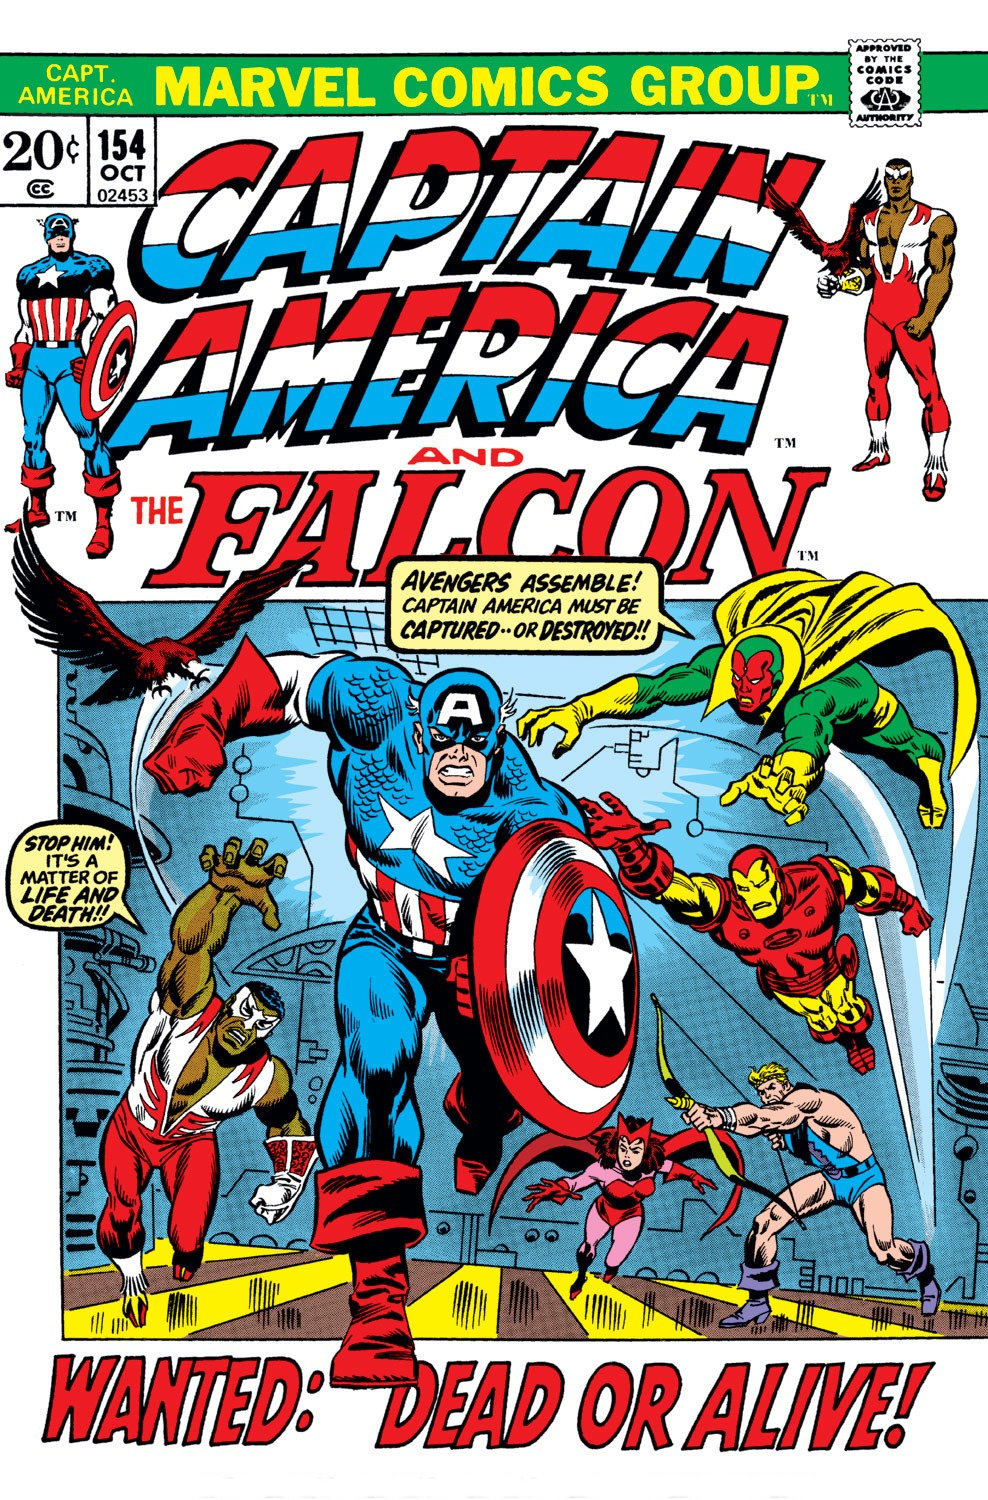 Captain America (1968) #154, cover penciled by Sal Buscema & inked by Frank Giacoia.